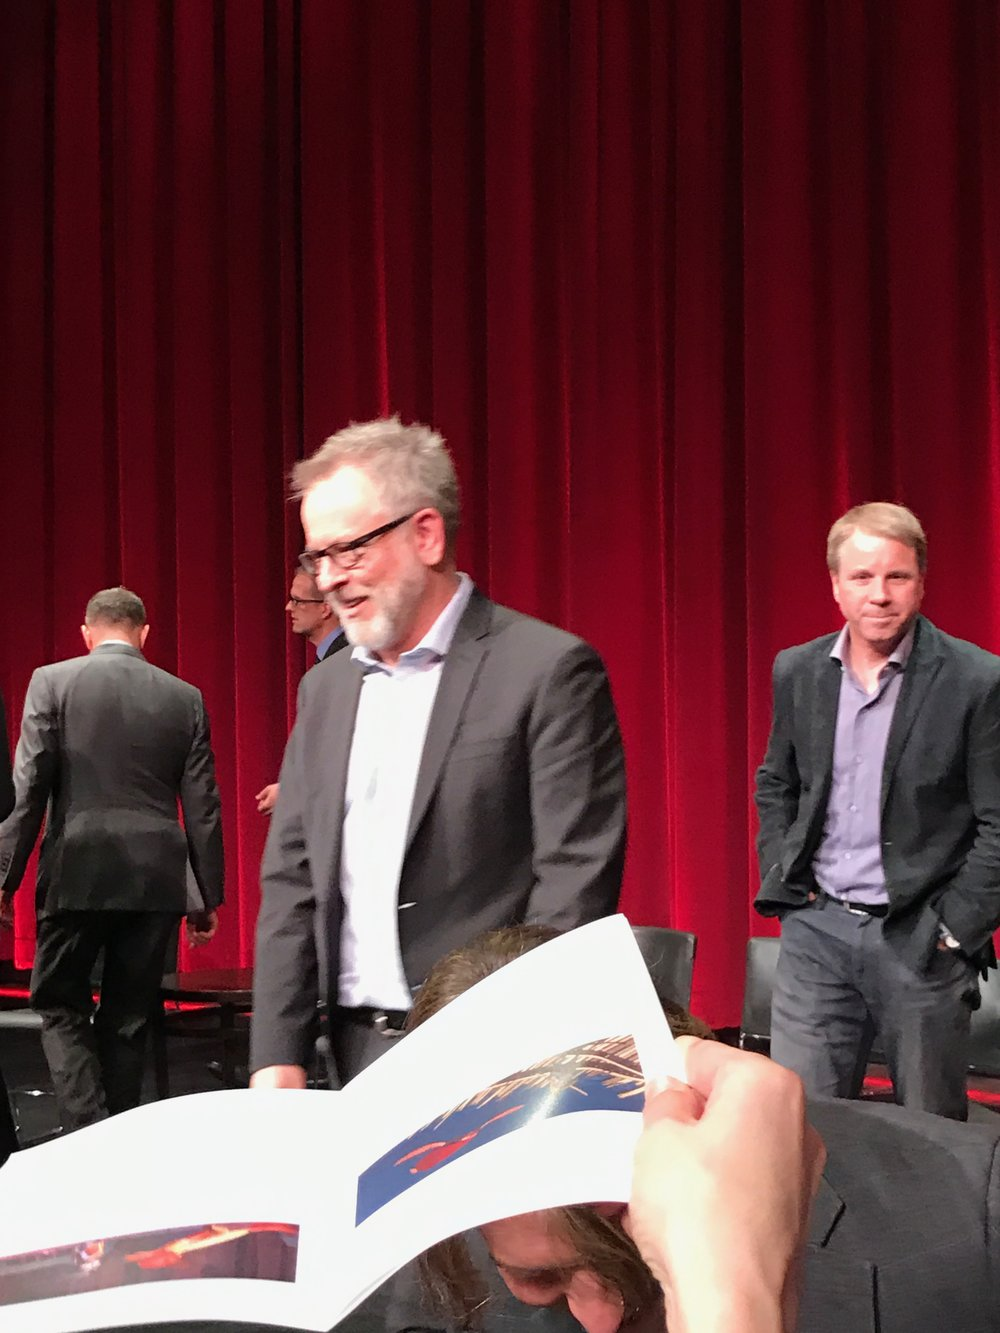 Zootopia Co-Director Rich Moore, with Producer Clark Spencer behind him on the right.